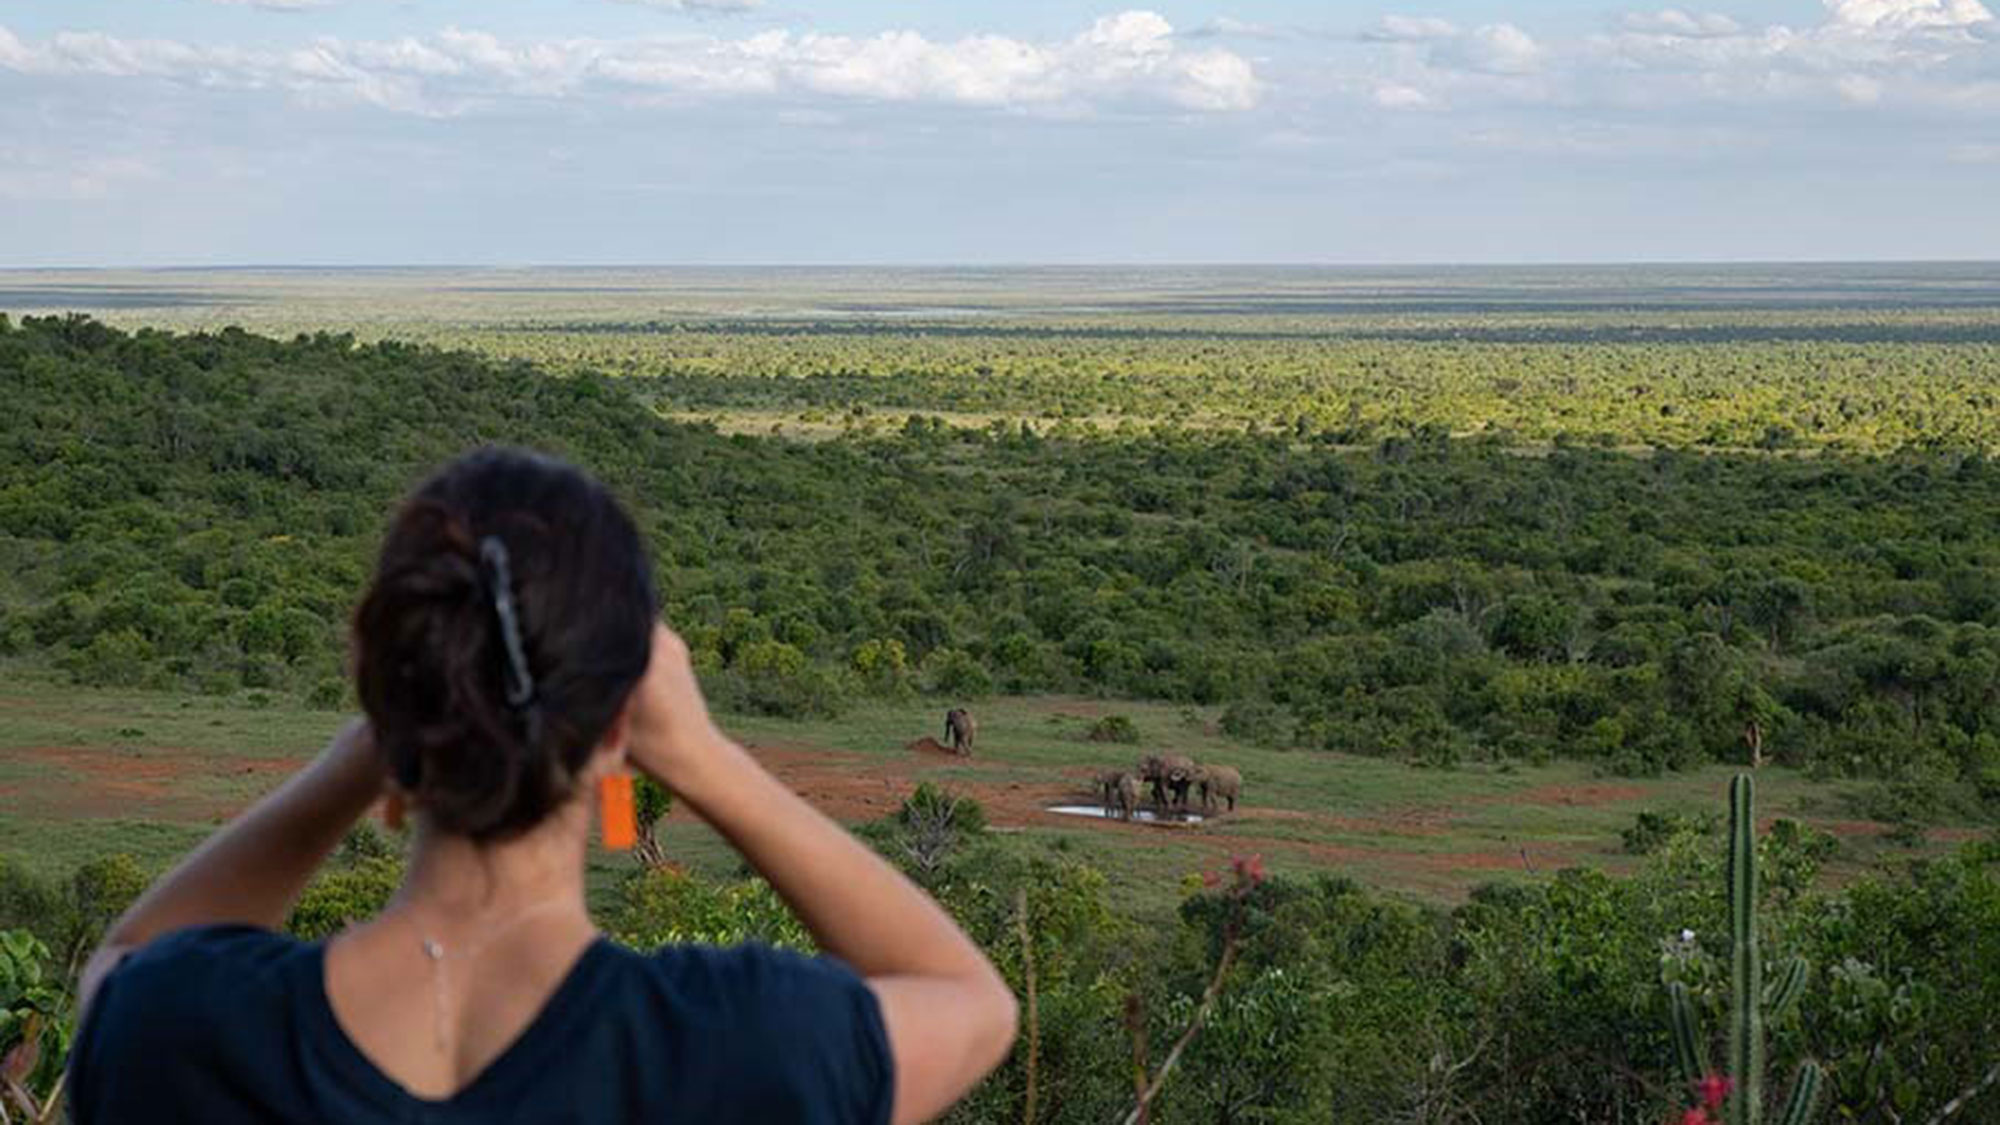 New lodge set to open in Kenya's Mugie Conservancy